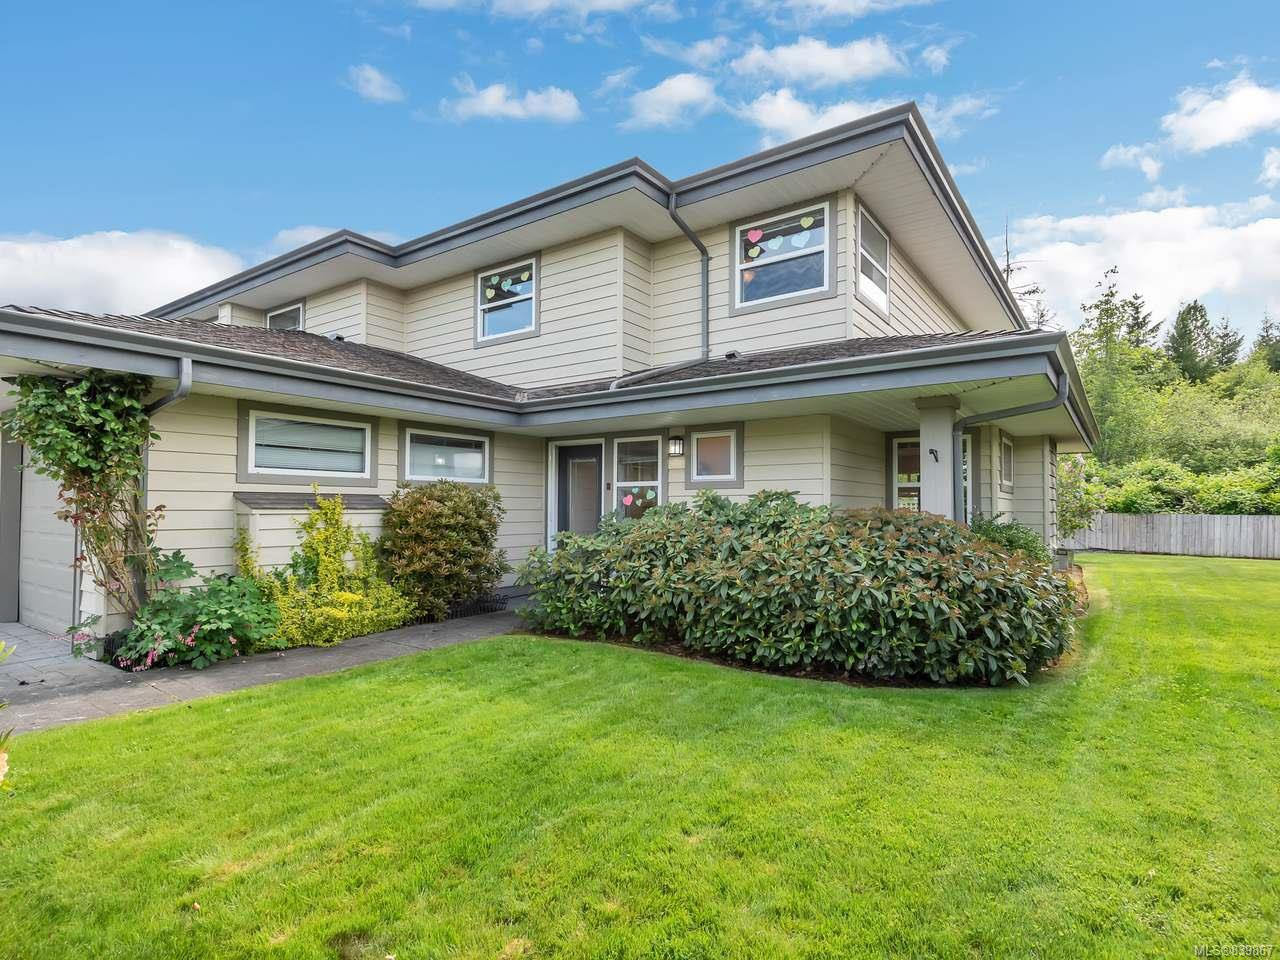 Main Photo: 21 2750 Denman St in CAMPBELL RIVER: CR Willow Point Row/Townhouse for sale (Campbell River)  : MLS®# 839867